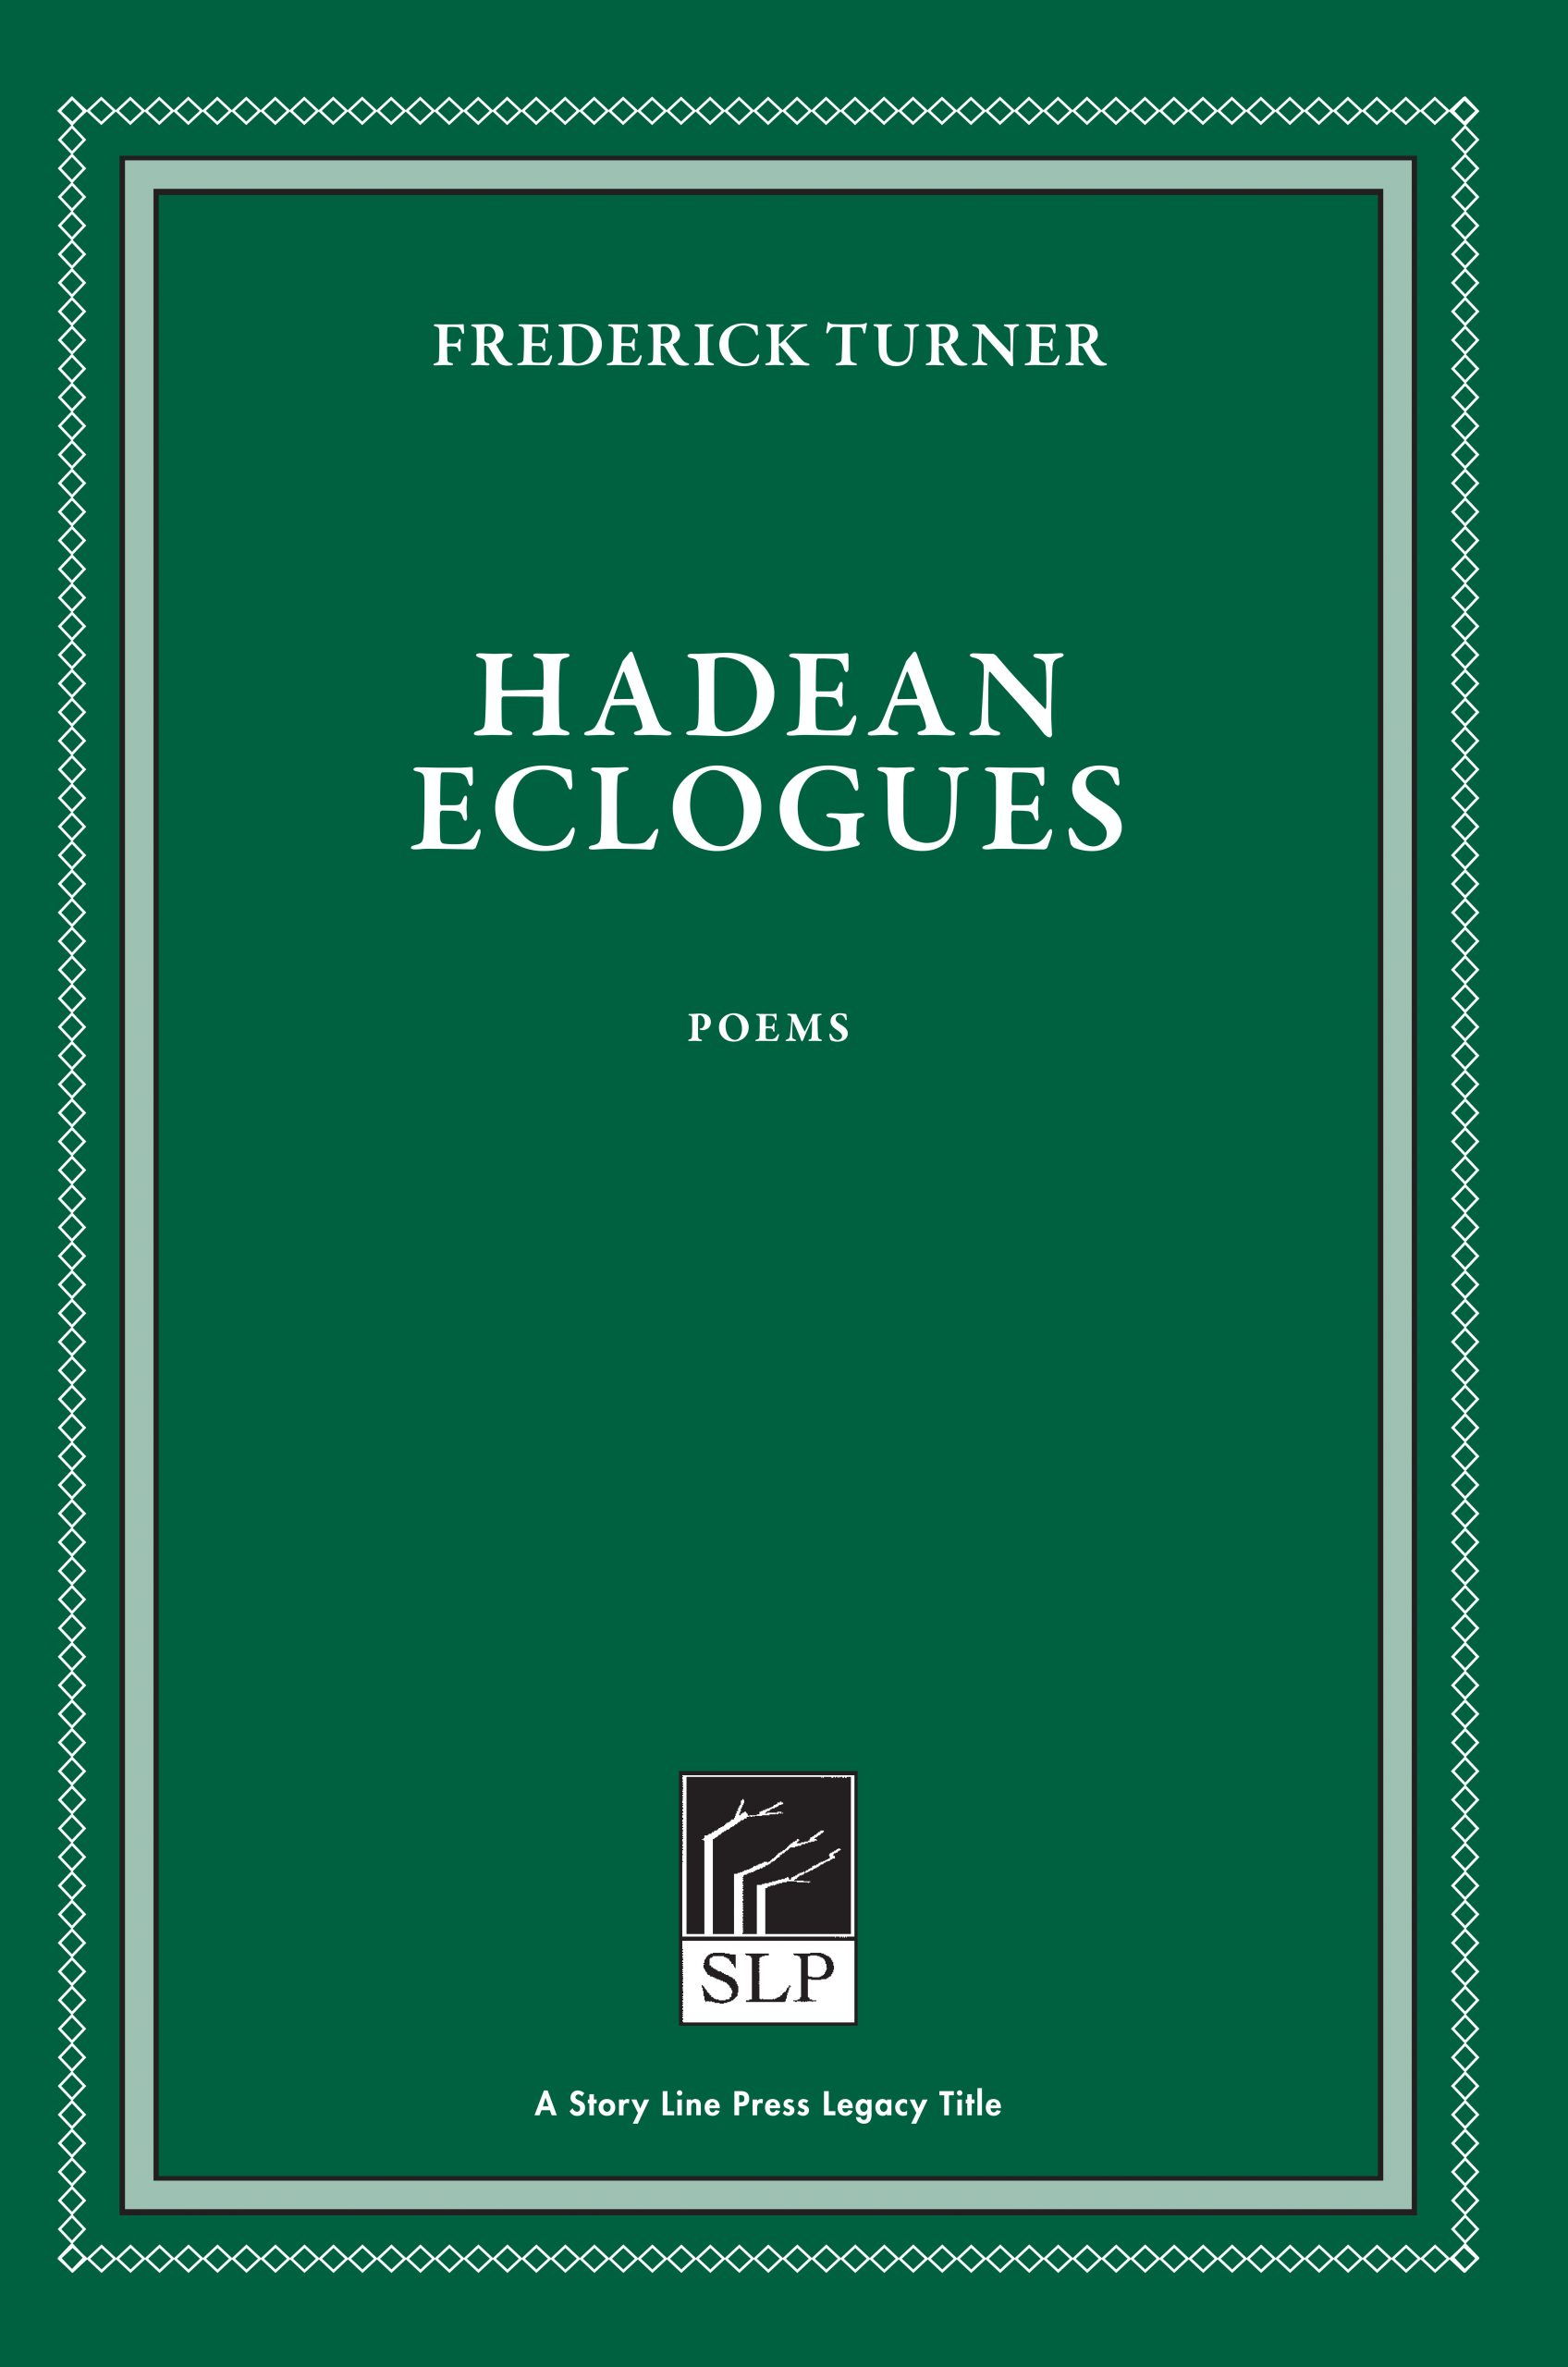 Story Line Press legacy tittle, Frederick Turner Hadean Eclogues Poems, white script text against emerald green background.